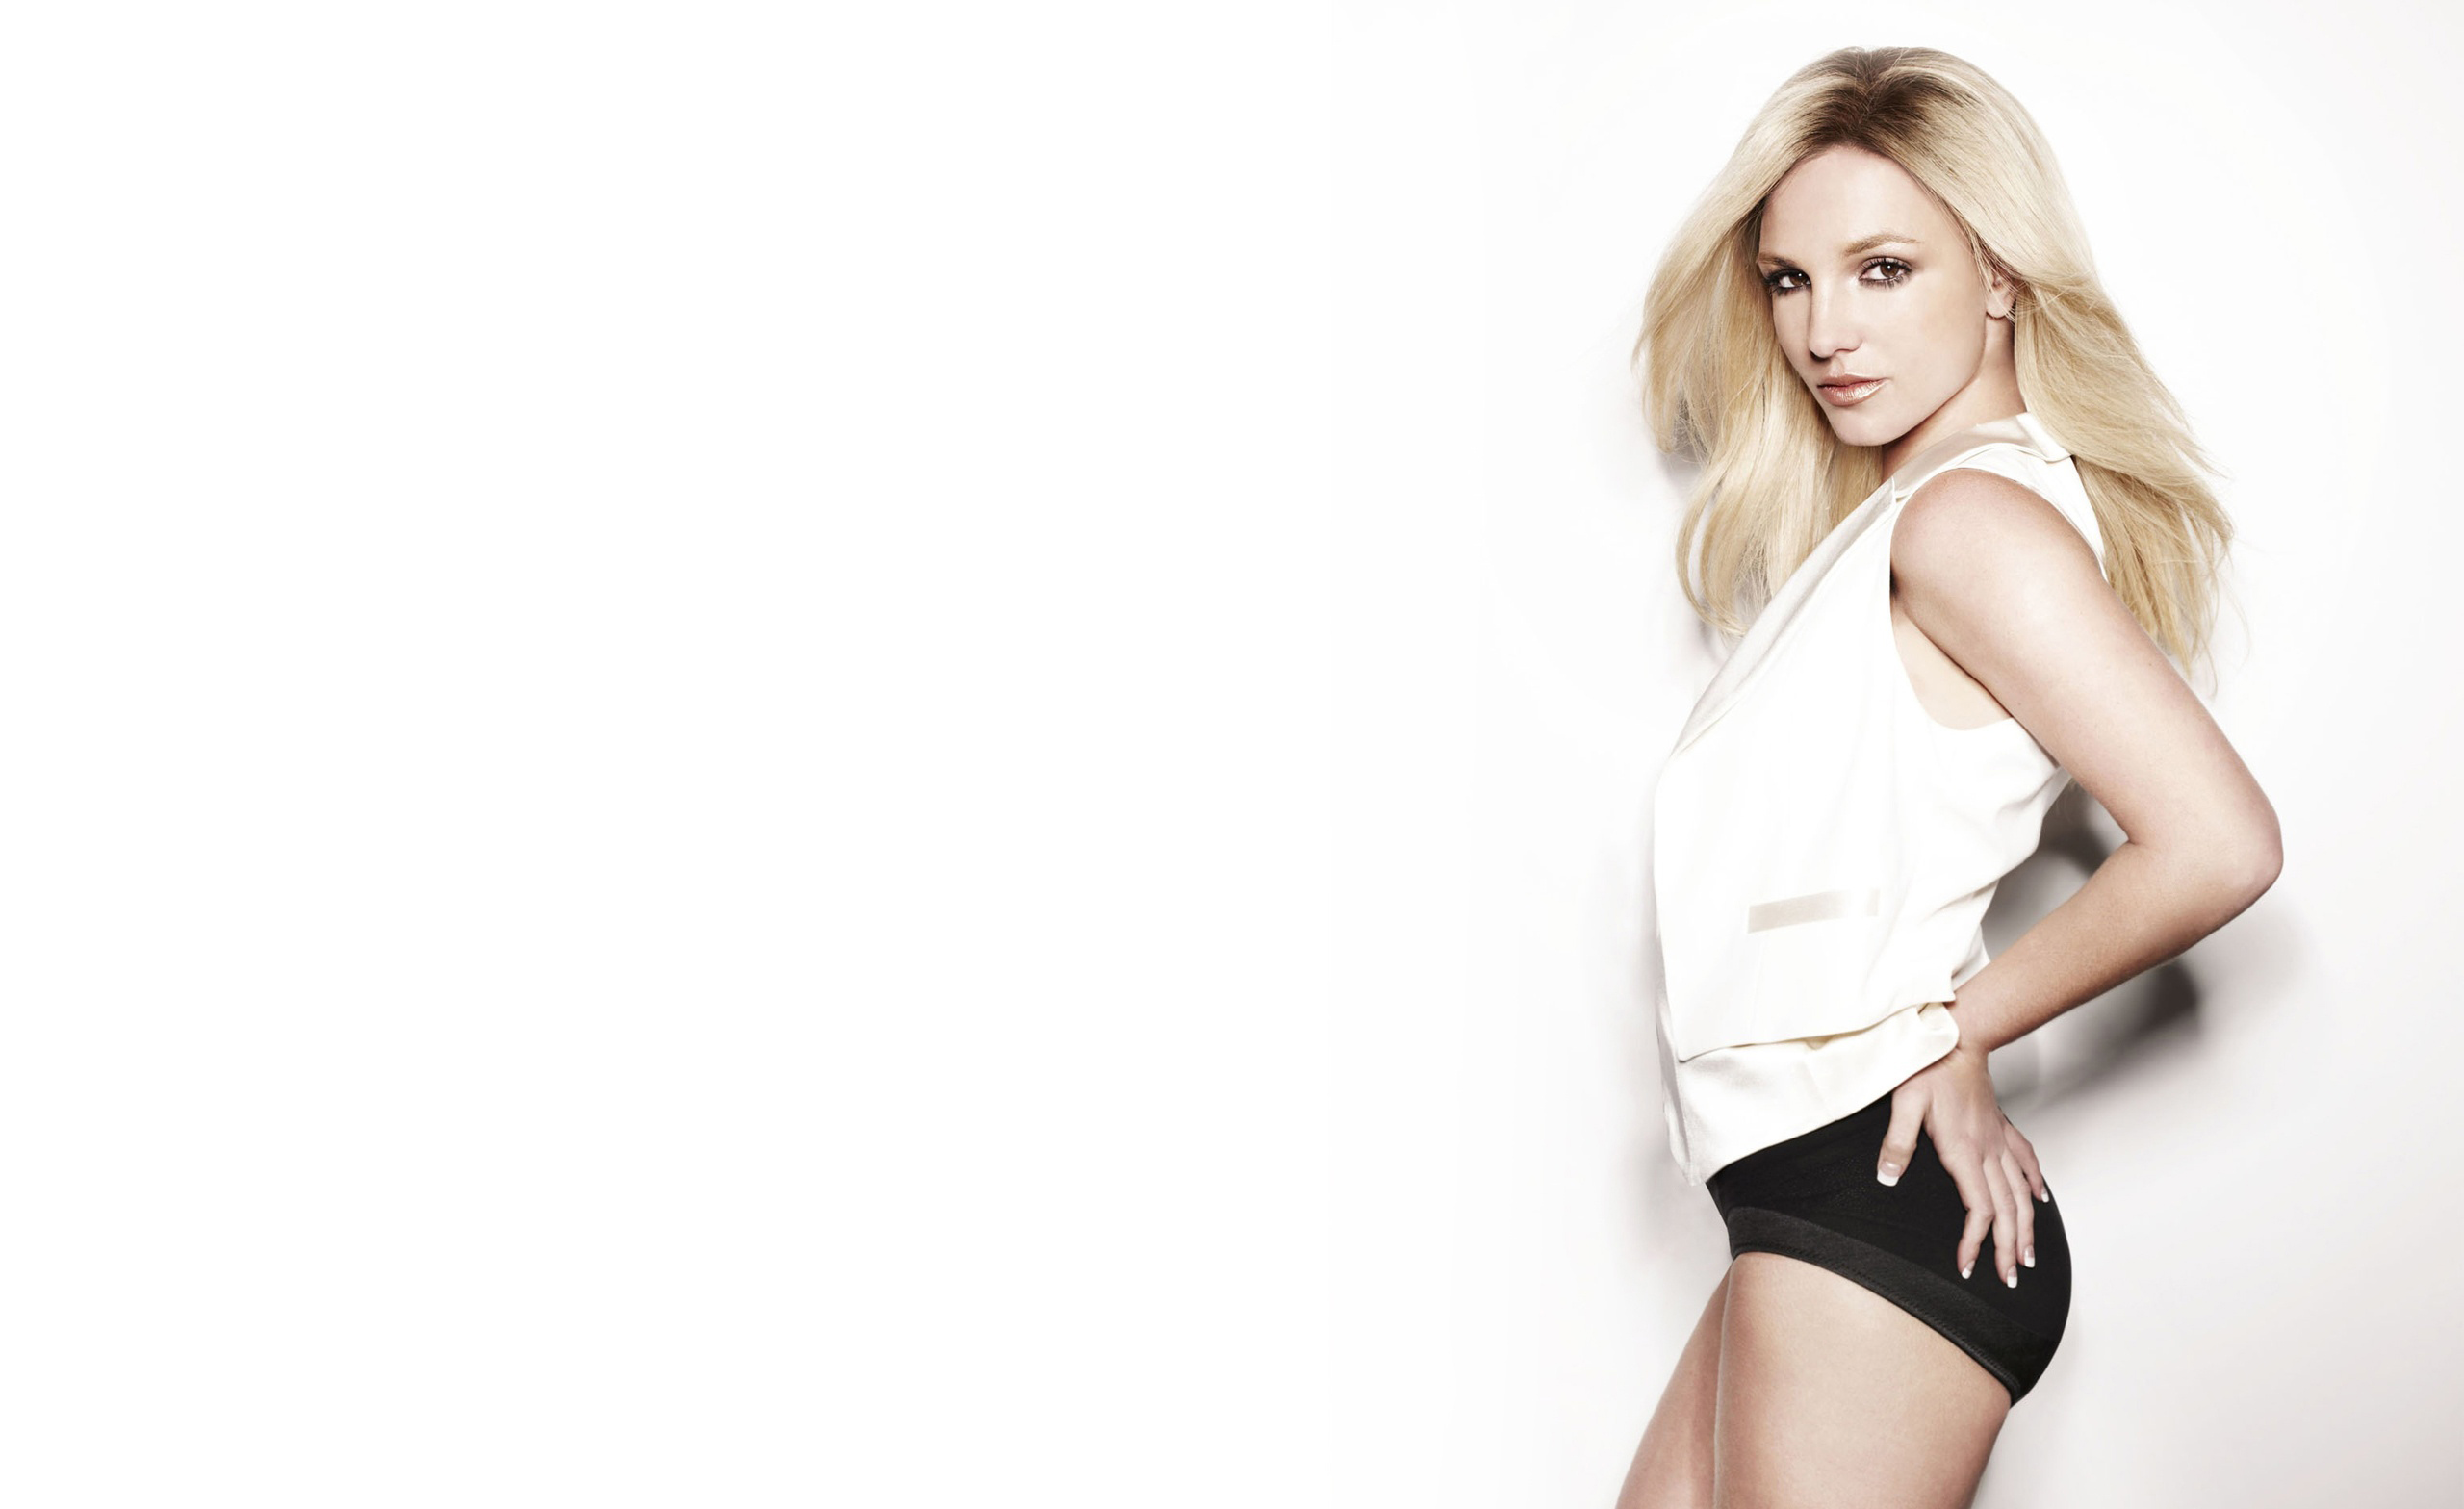 britney spears sexy hd 1440x3120 Britney Spears new wallpapers 1440x3120 Resolution ...